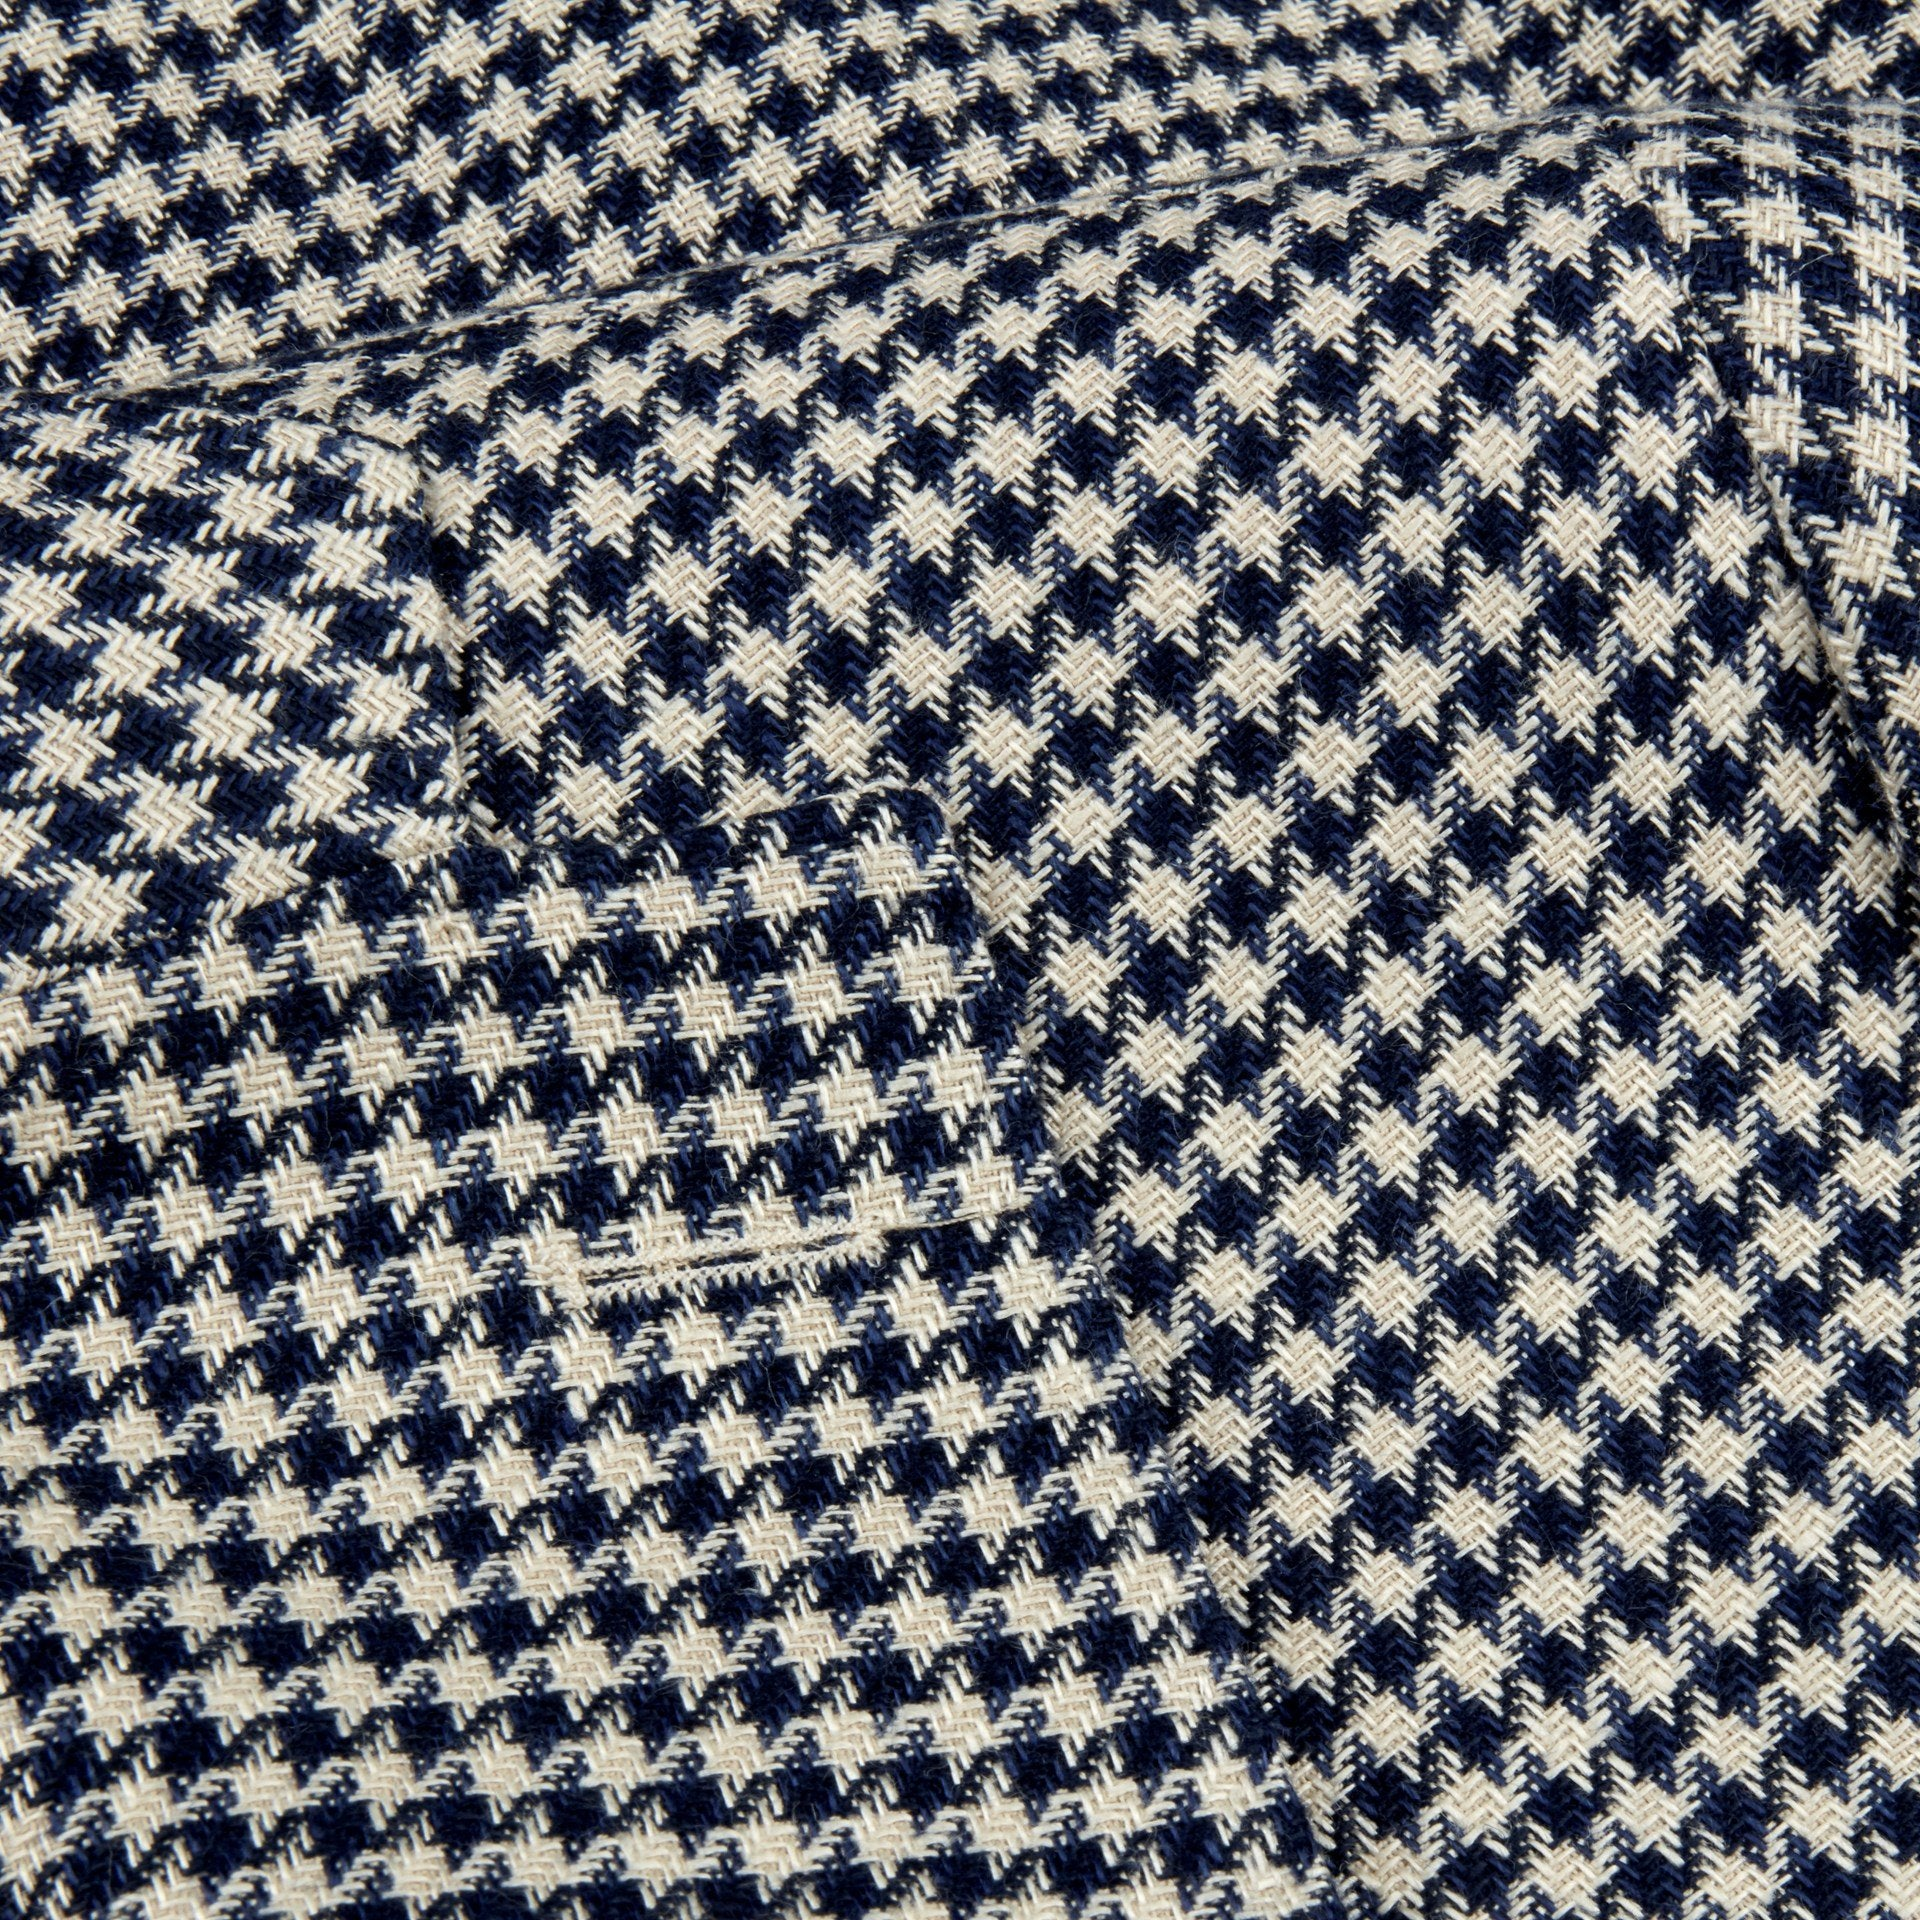 Stenstroms Navy & Beige Houndstooth Cotton Linen Blazer